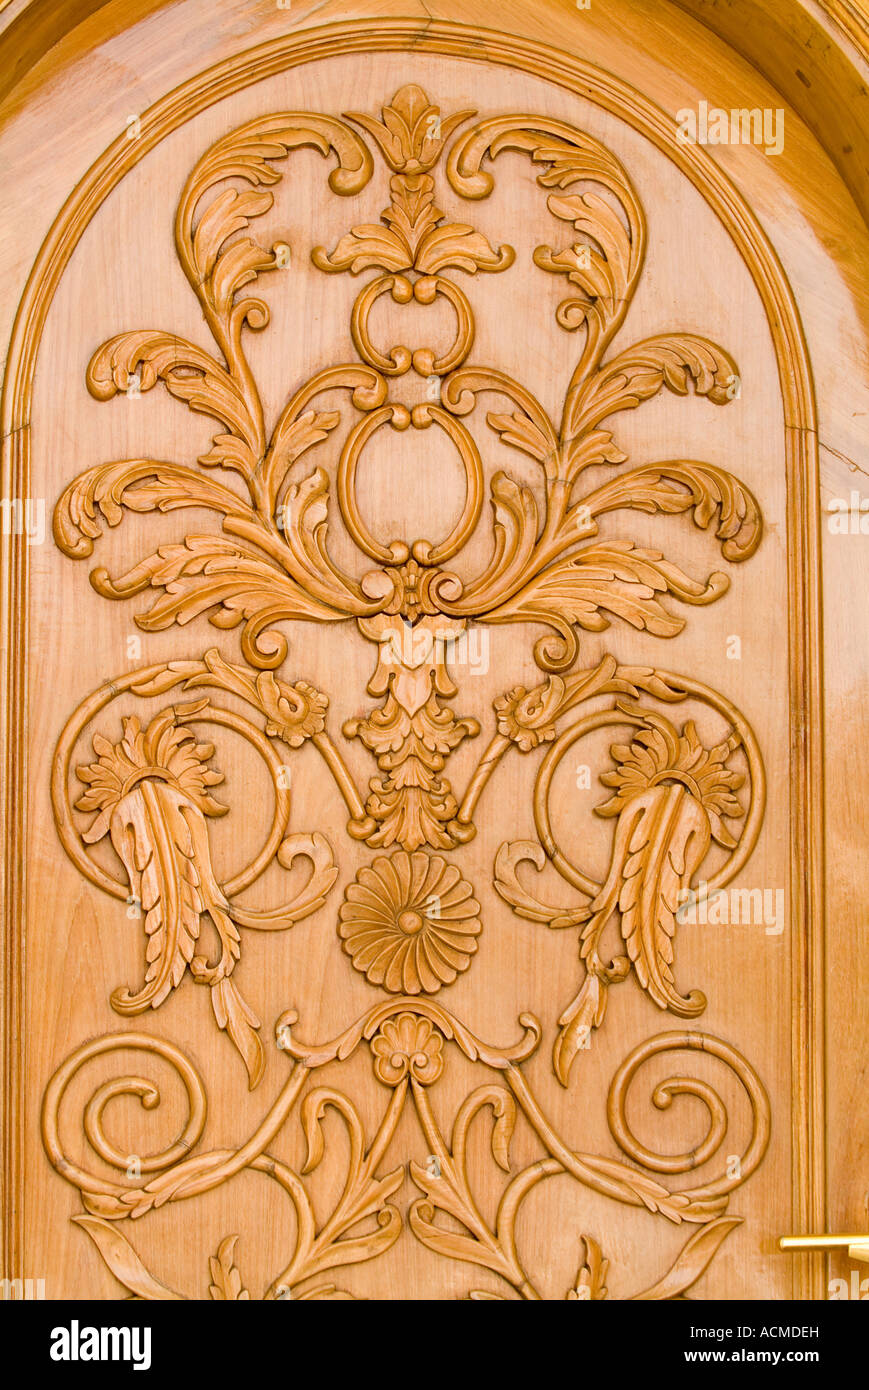 A DECORATIVE WOODEN DOOR PANEL WITH ELABORATIVE HANDICRAFT WORK DONE ON IT  sc 1 st  Alamy & A DECORATIVE WOODEN DOOR PANEL WITH ELABORATIVE HANDICRAFT WORK DONE ...